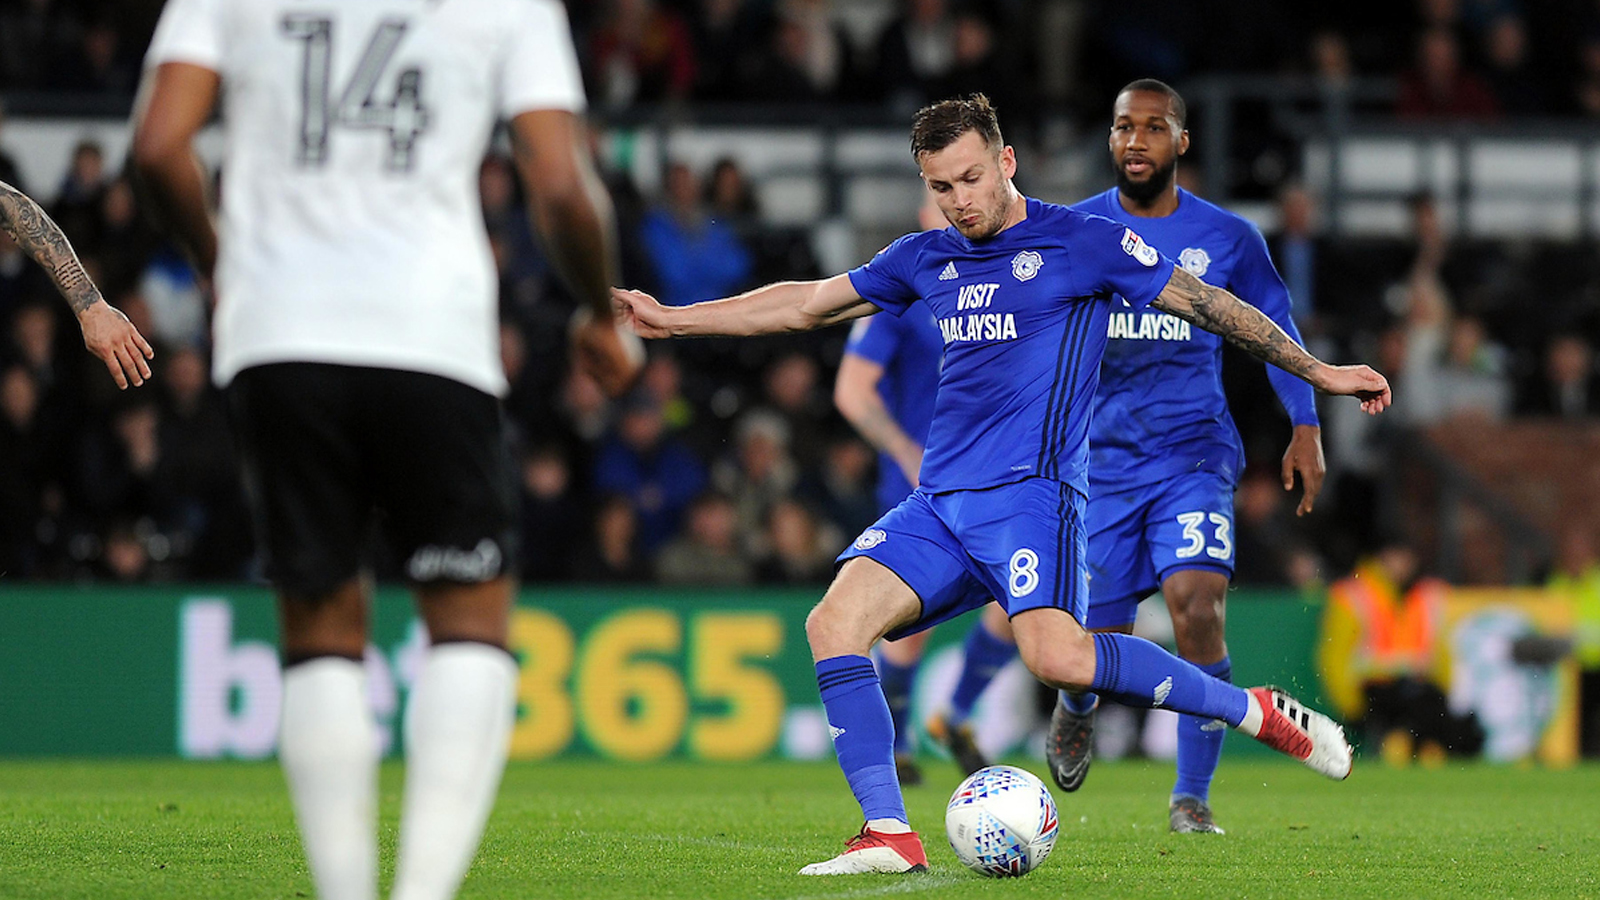 cardiff city vs derby county - photo #42